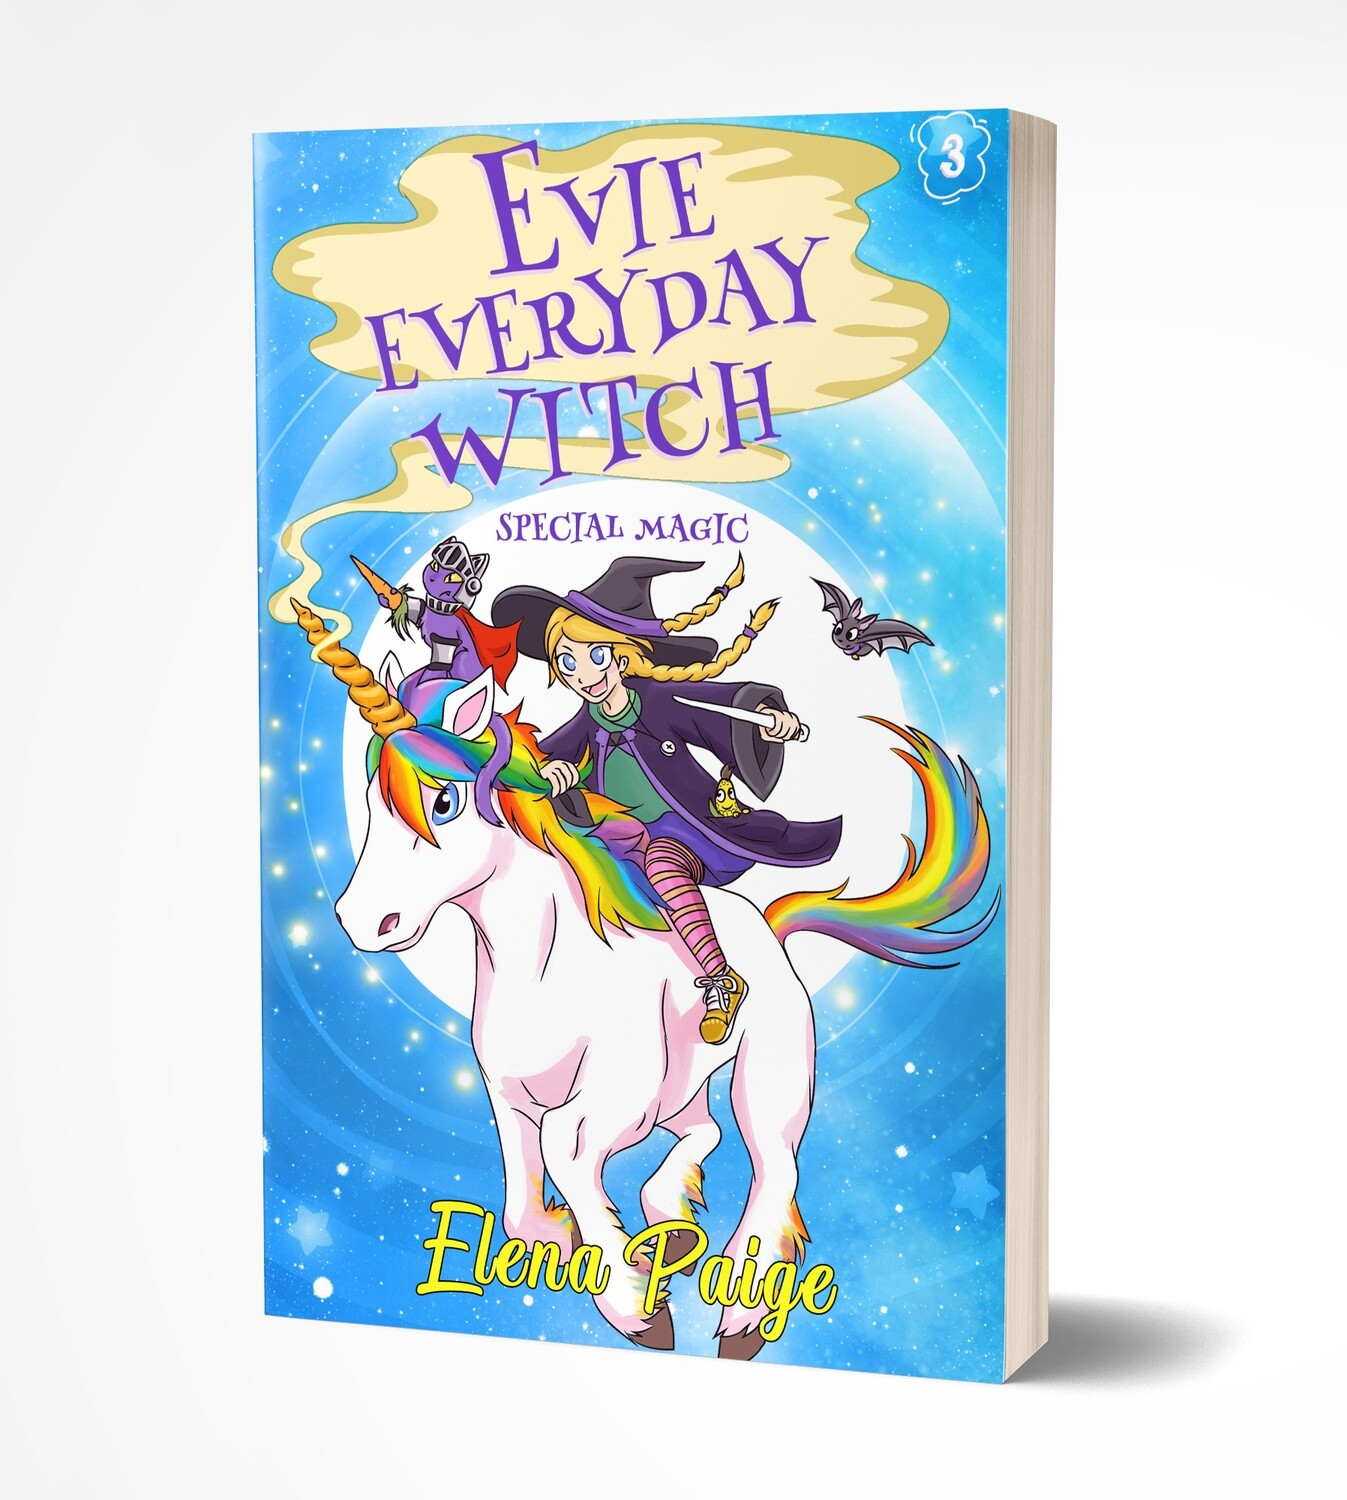 Special Magic (Evie Everyday Witch Book 3) - Paperback Edition 8x5